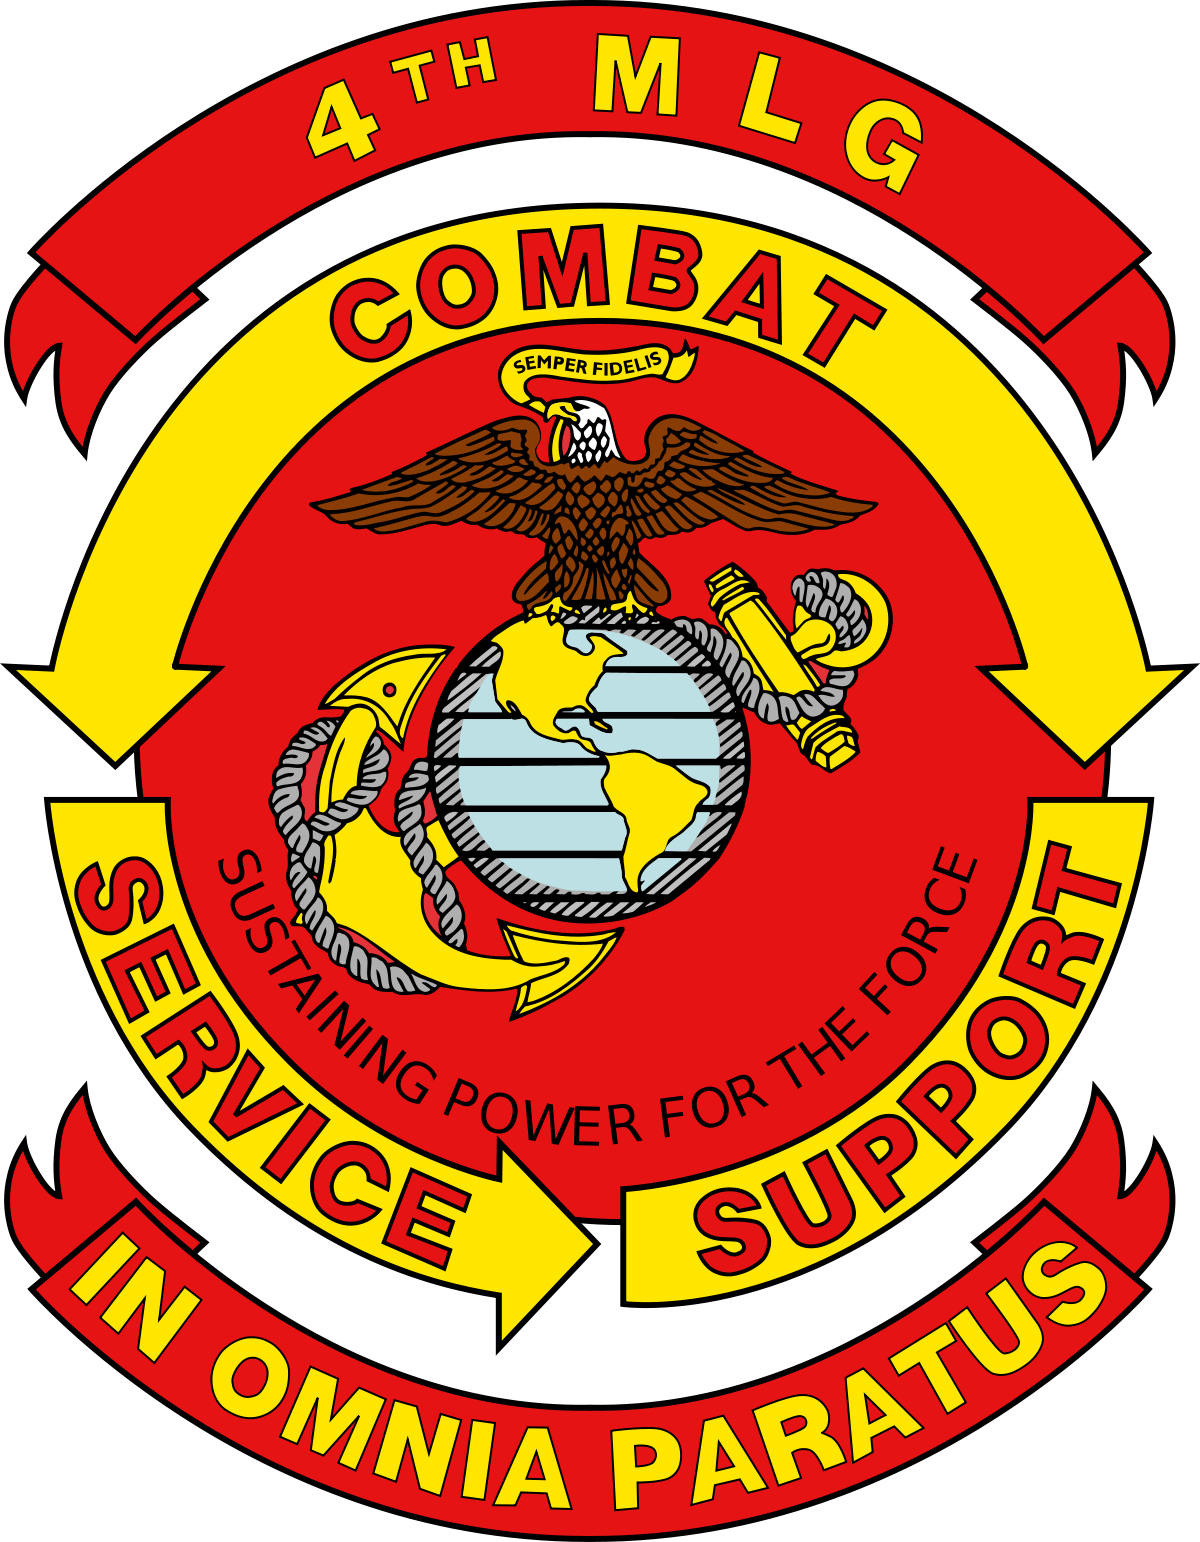 Usmc PNG And Graphics - 81692